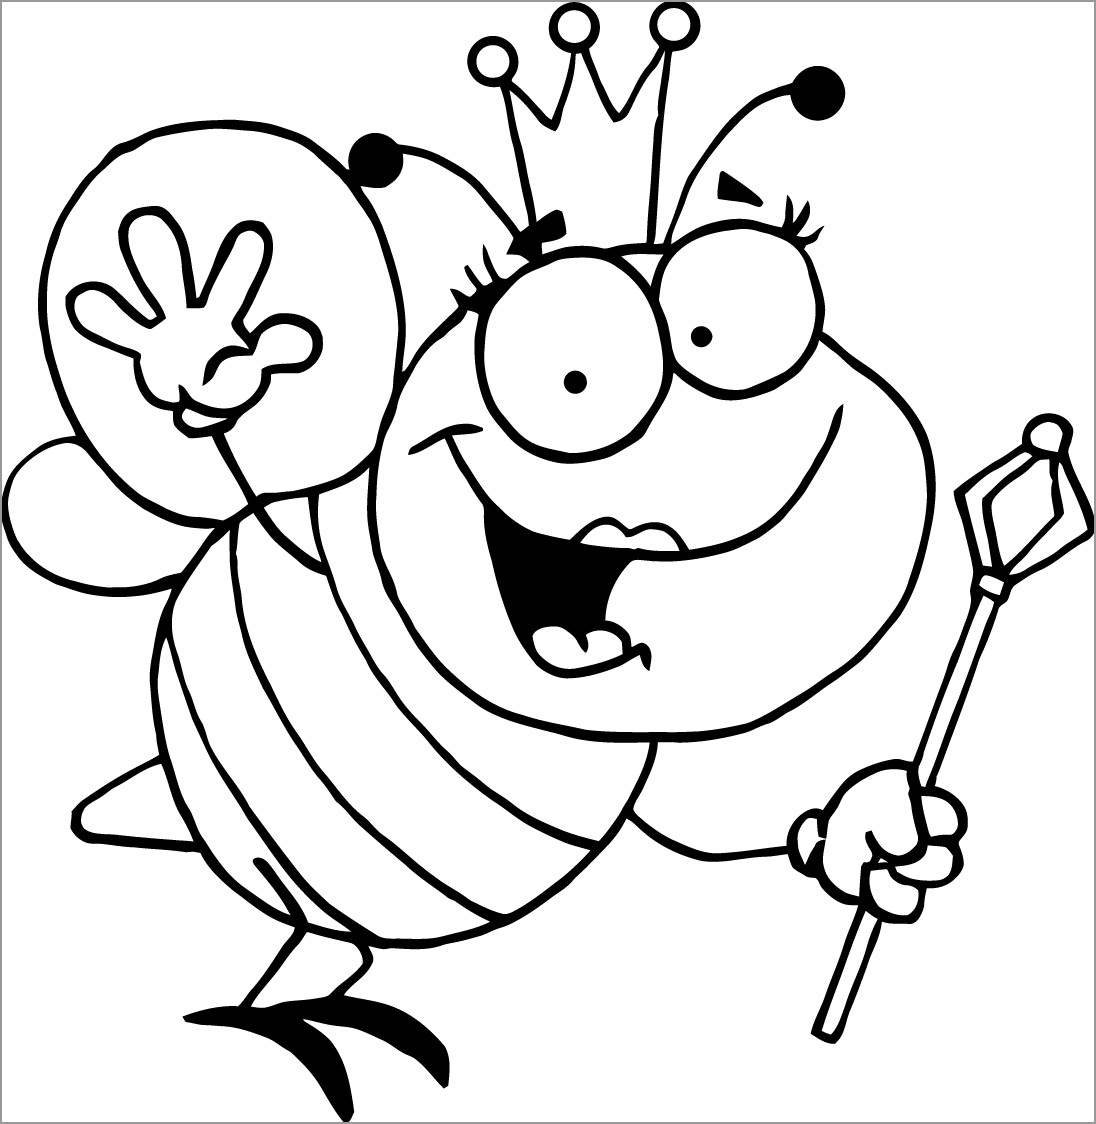 Queen Bee Coloring Pages for Kids